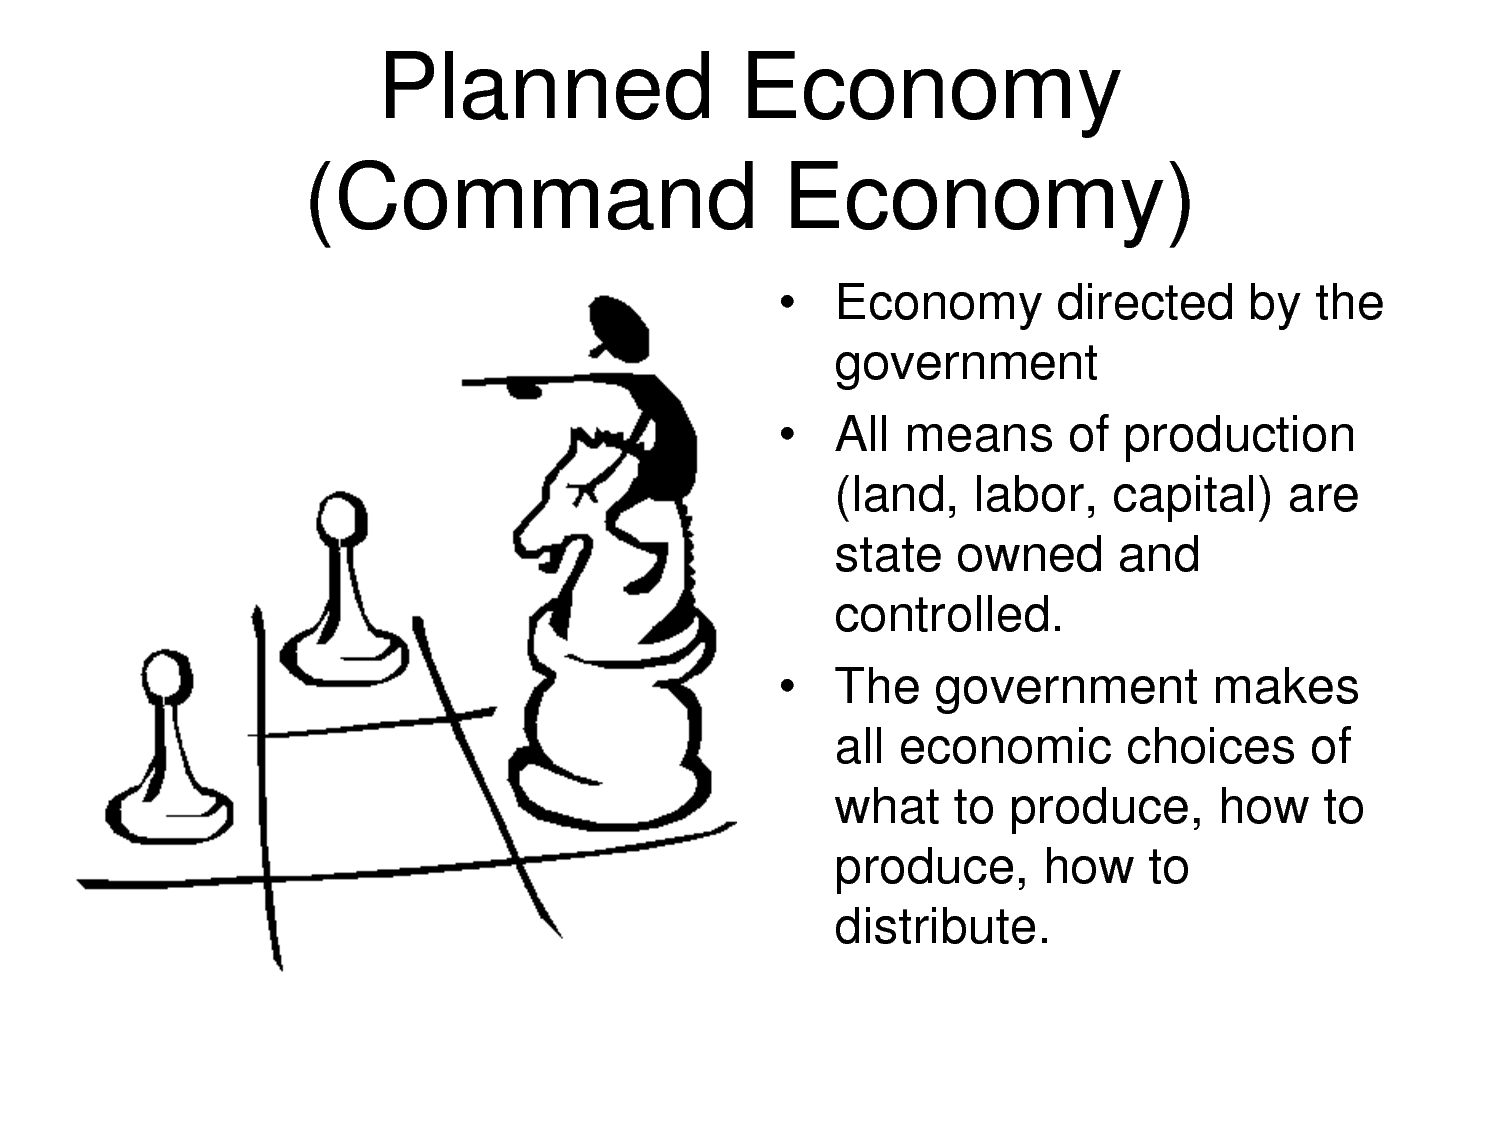 an economy in which production investment prices and incomes an economy in which production investment prices and incomes are determined centrally by